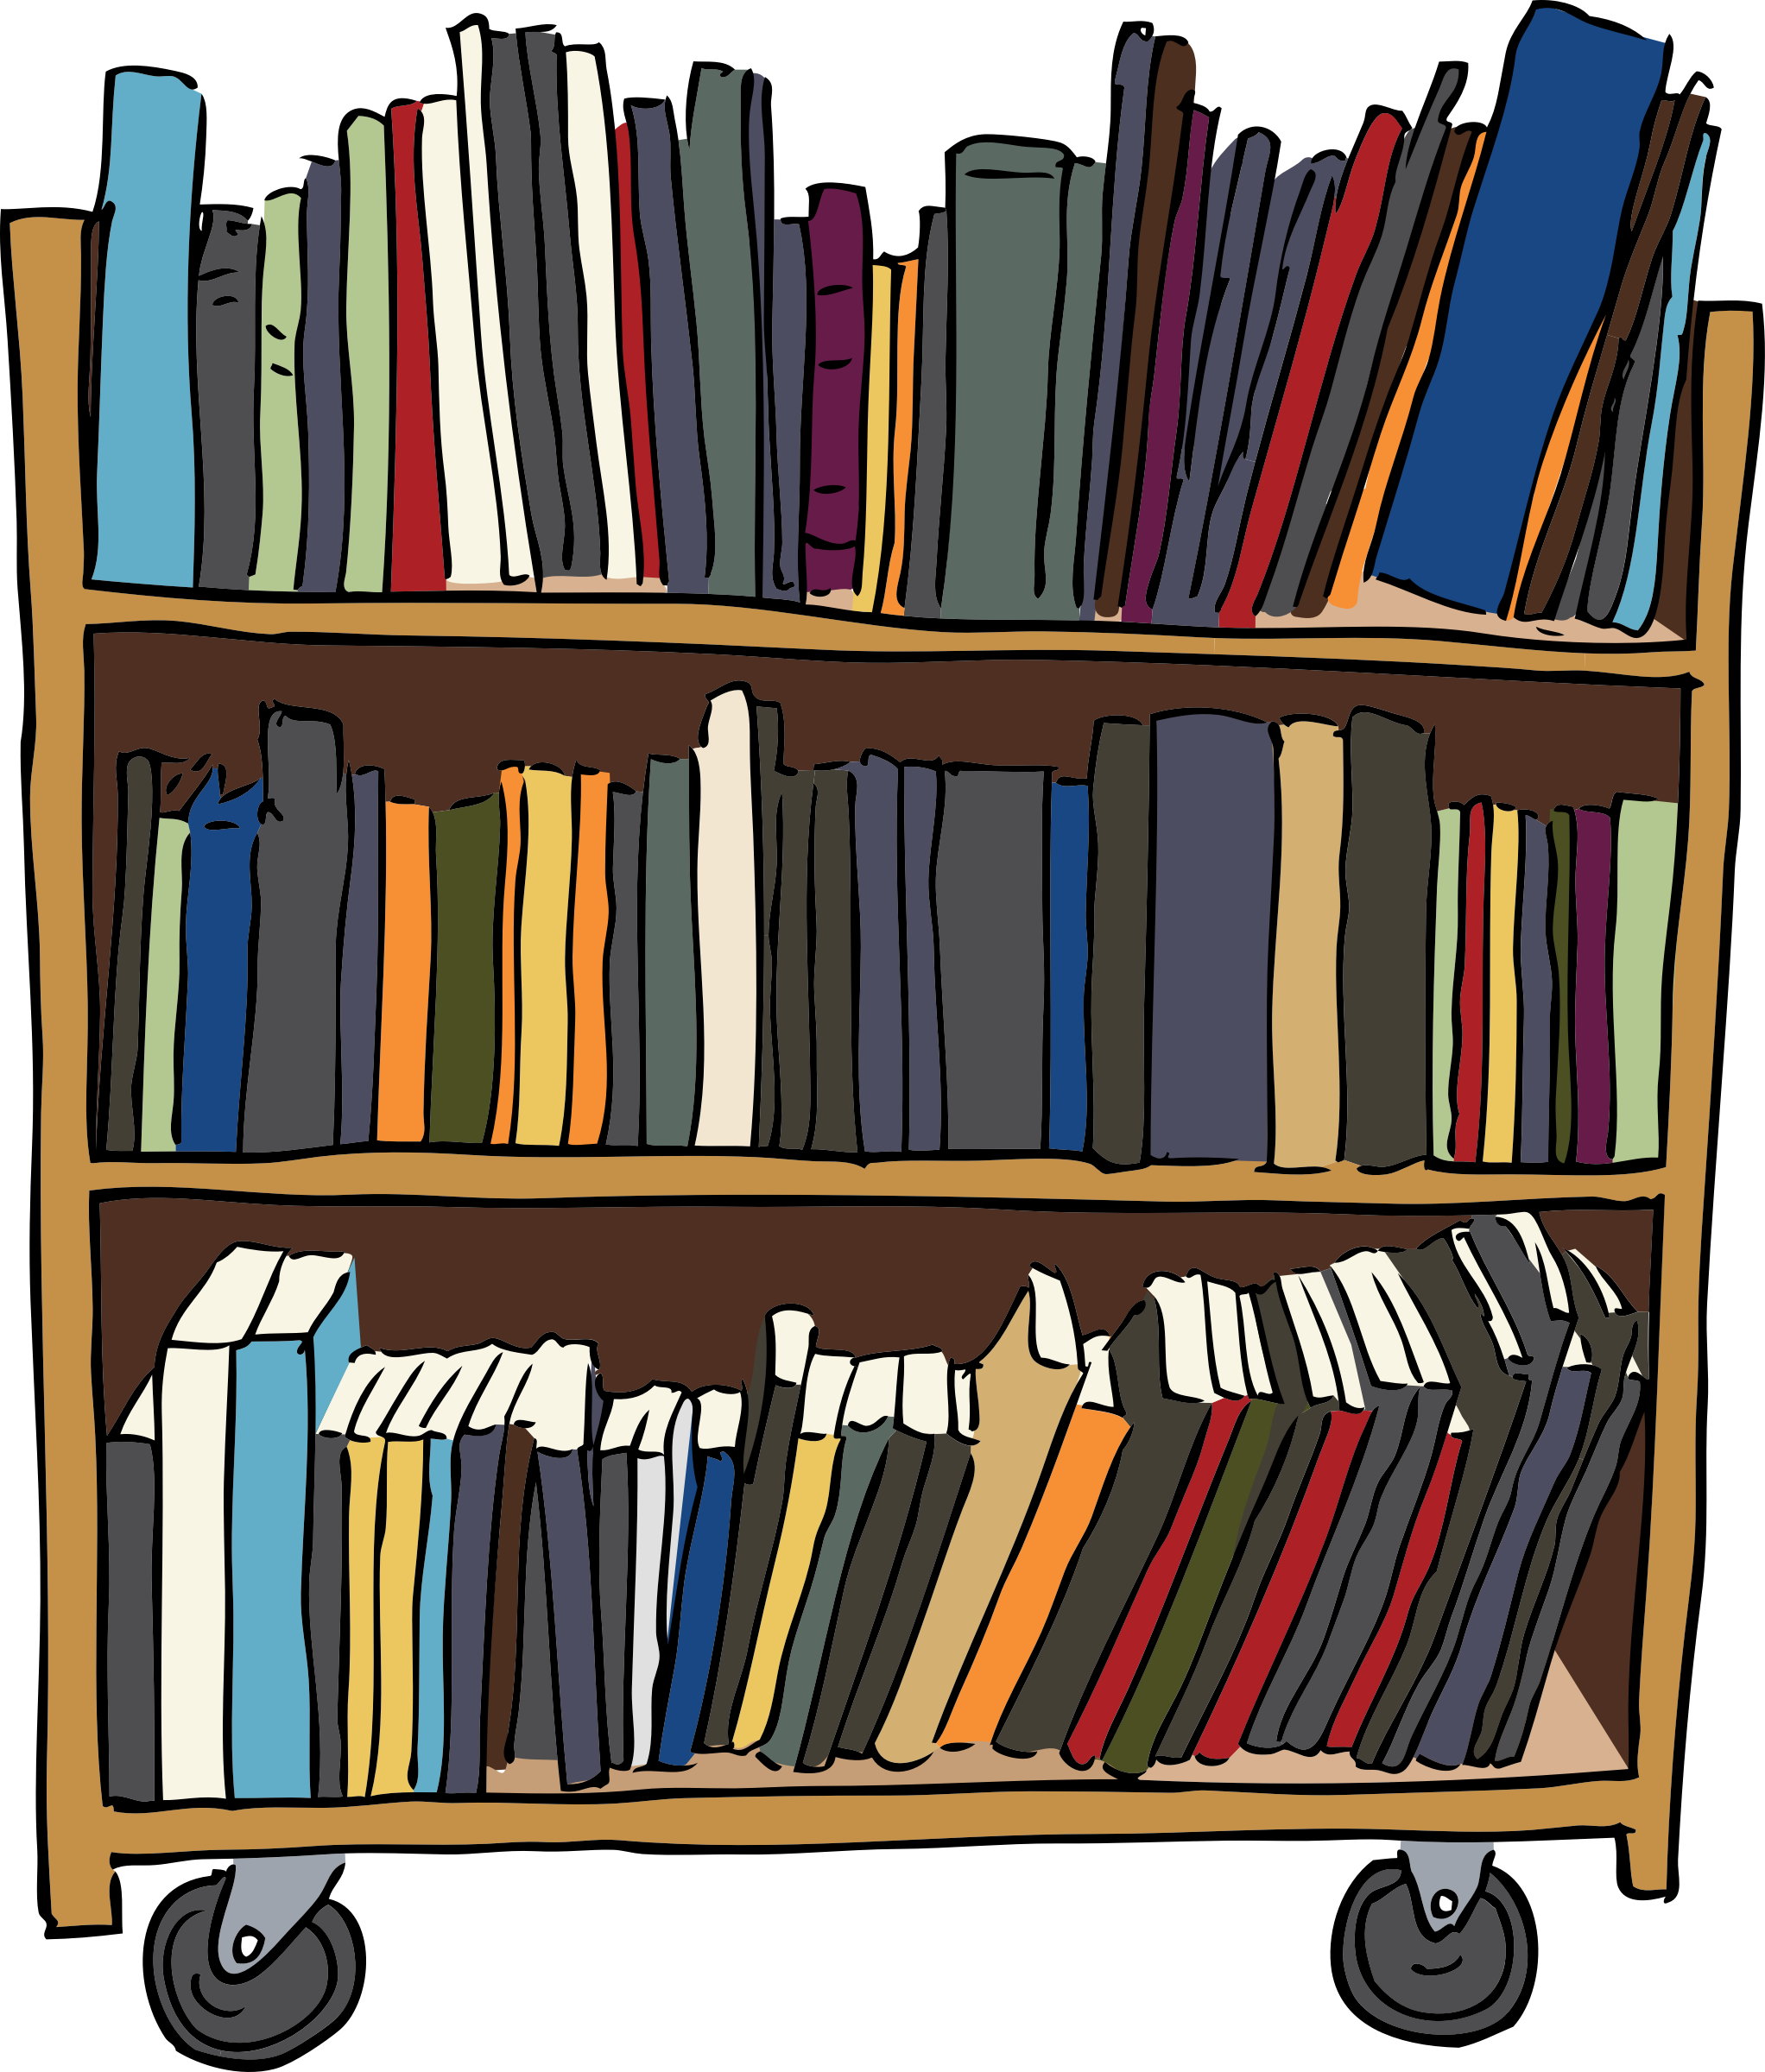 Editingsoftware clipart library research Cart Book Book Library Library